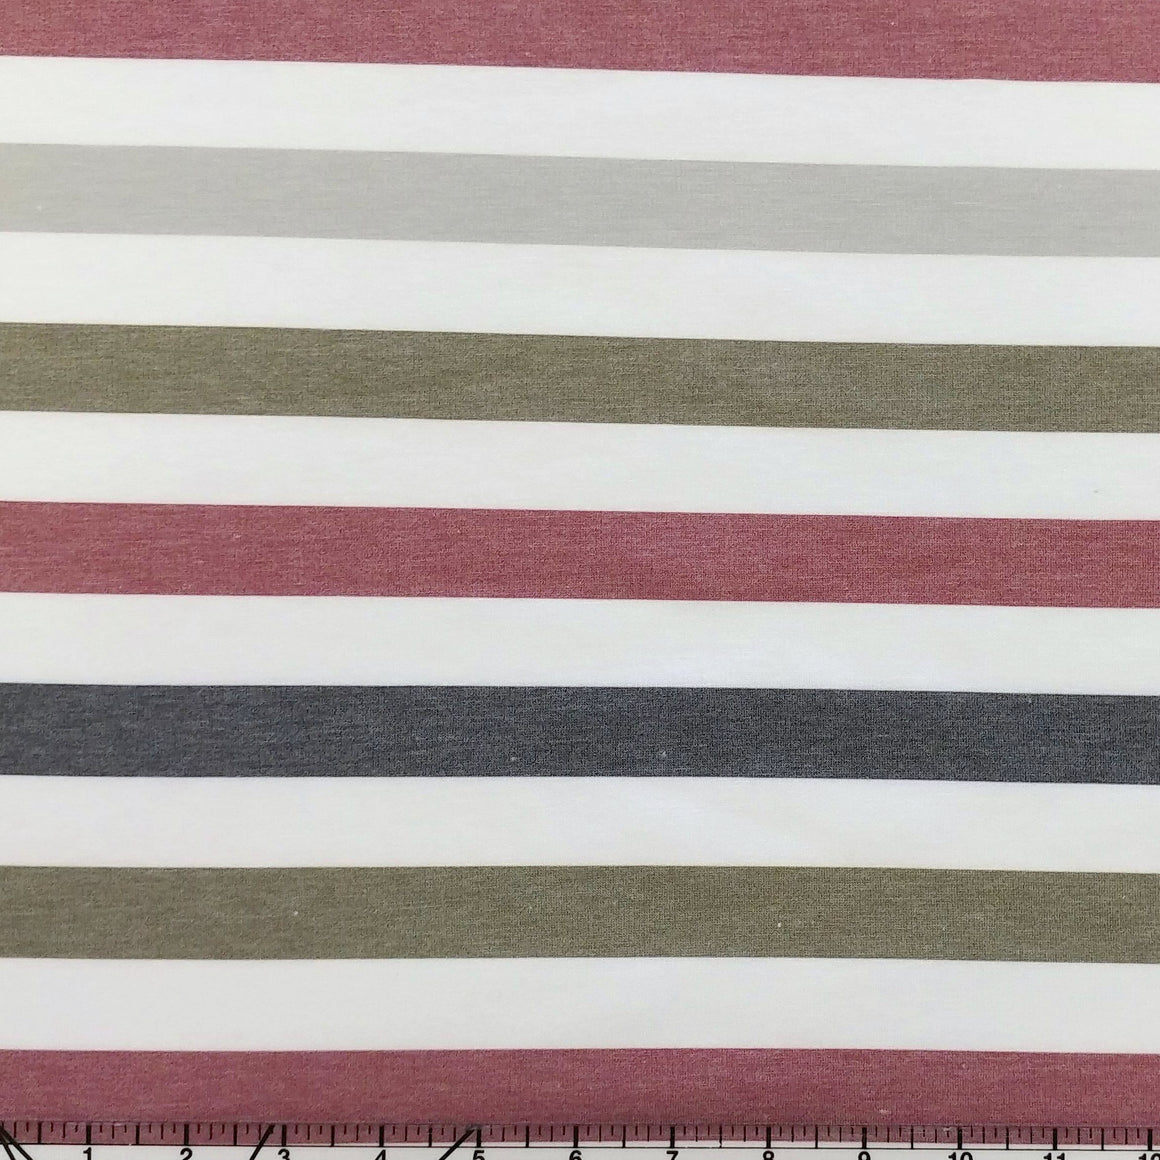 Burgundy Grey Charcoal and Olive Multi Stripe Heathered FLEECE Sweatshirt Knit Fabric, CLUB Fabrics - Raspberry Creek Fabrics